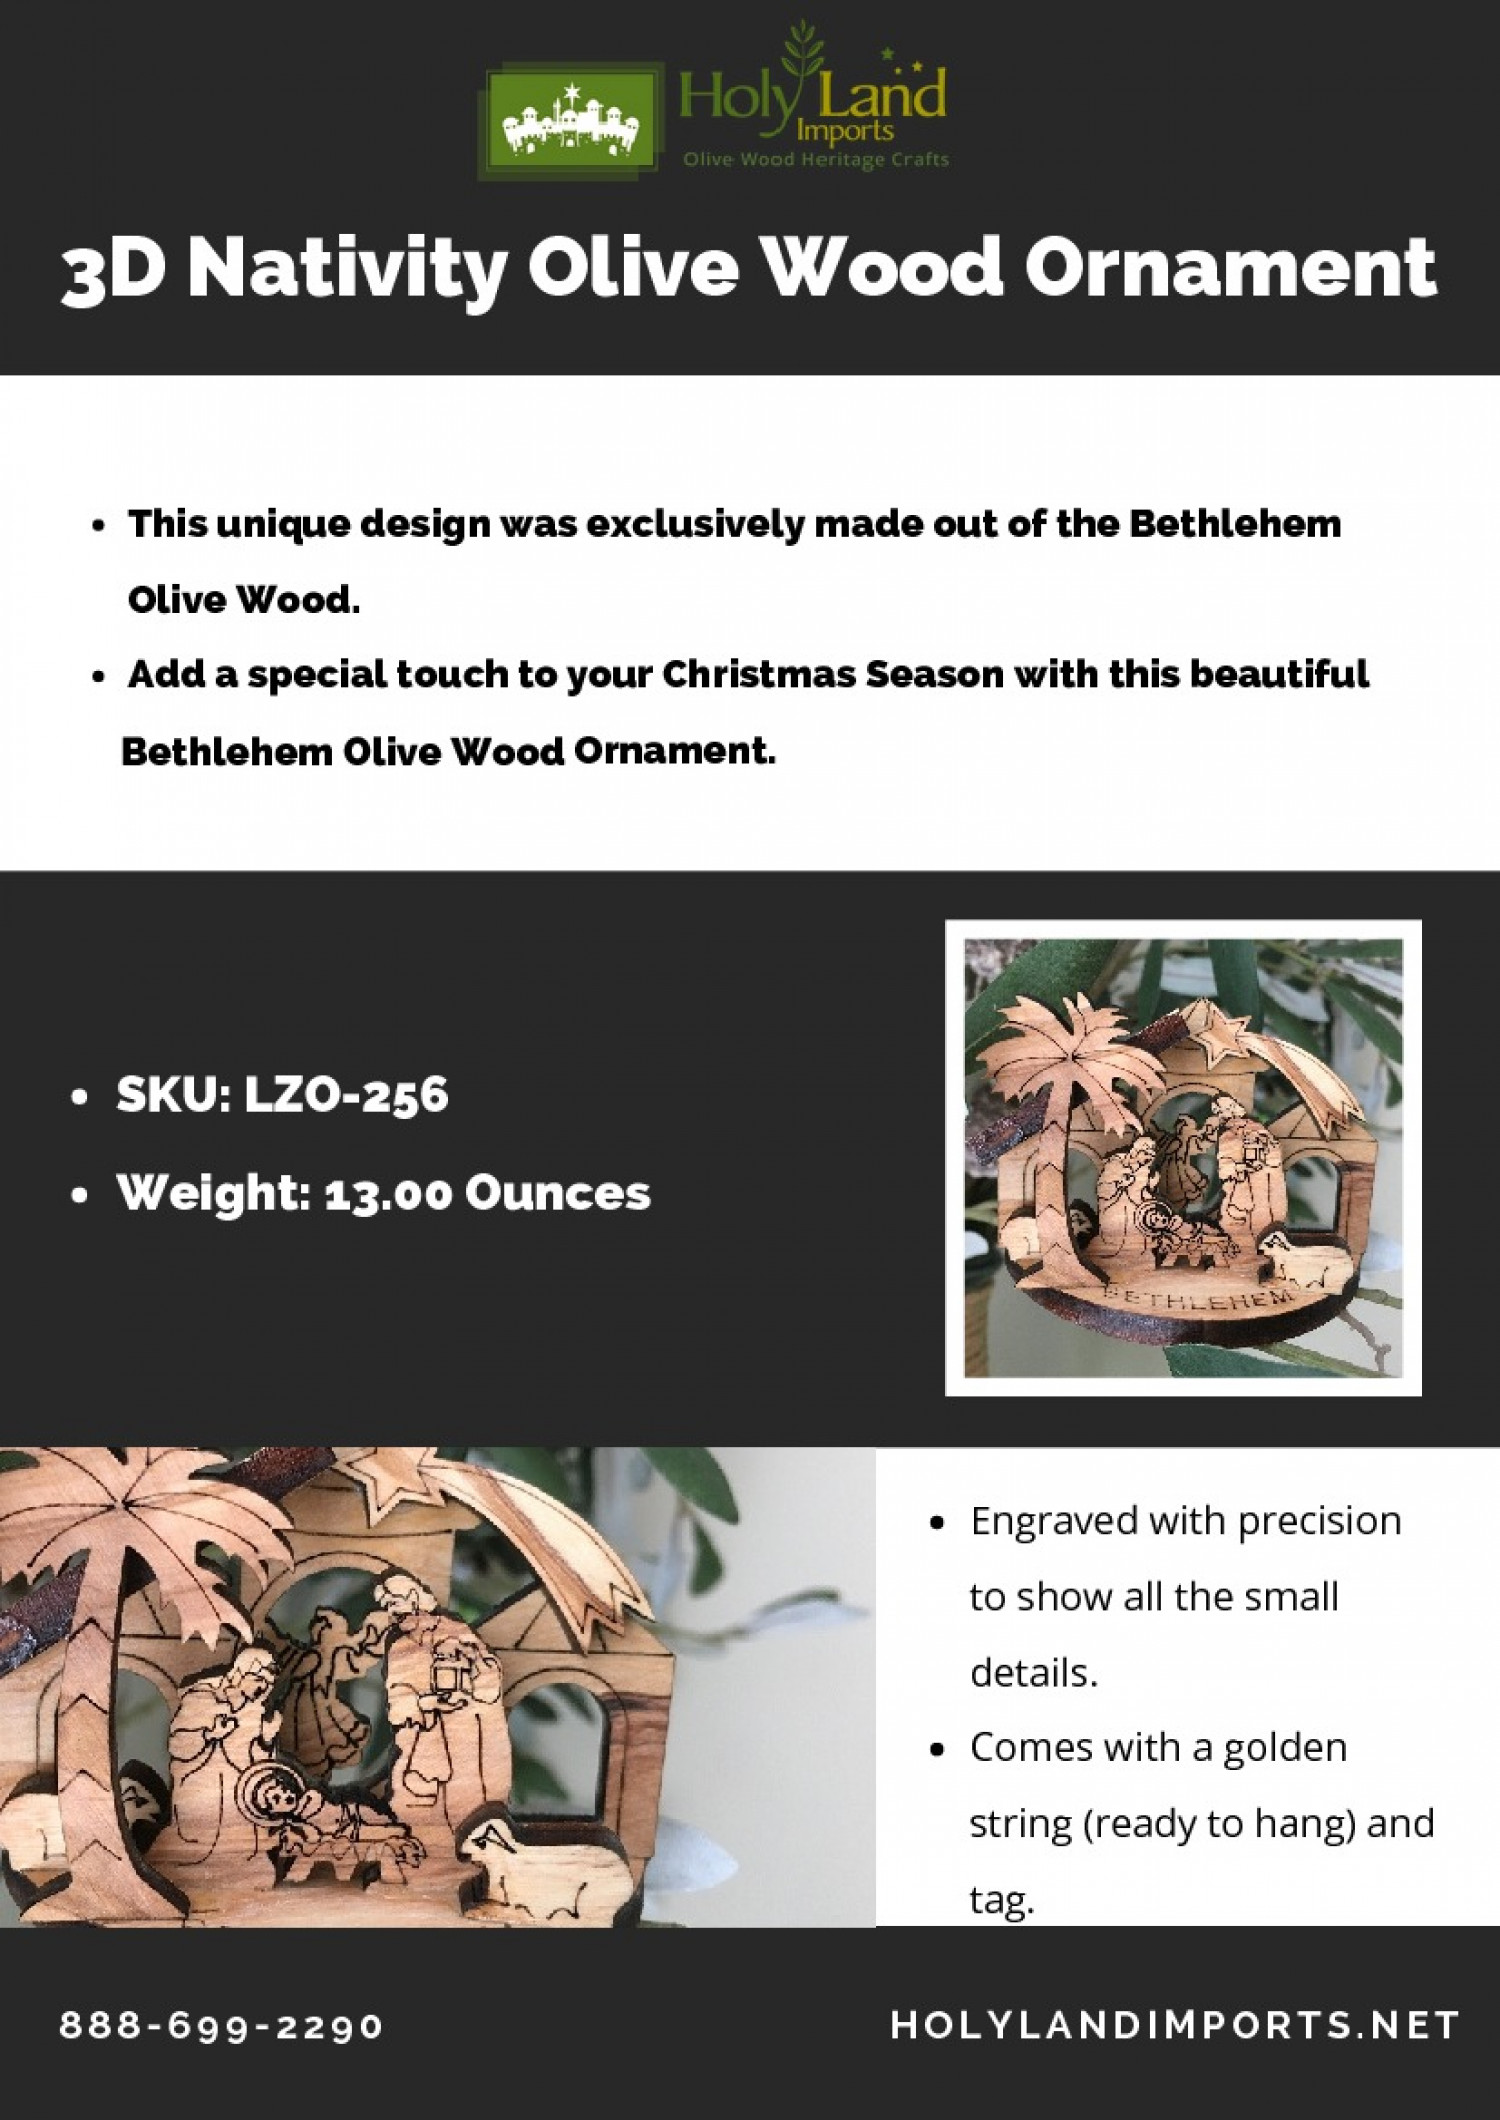 3D Nativity Olive Wood Ornament - Holy land Imports Infographic